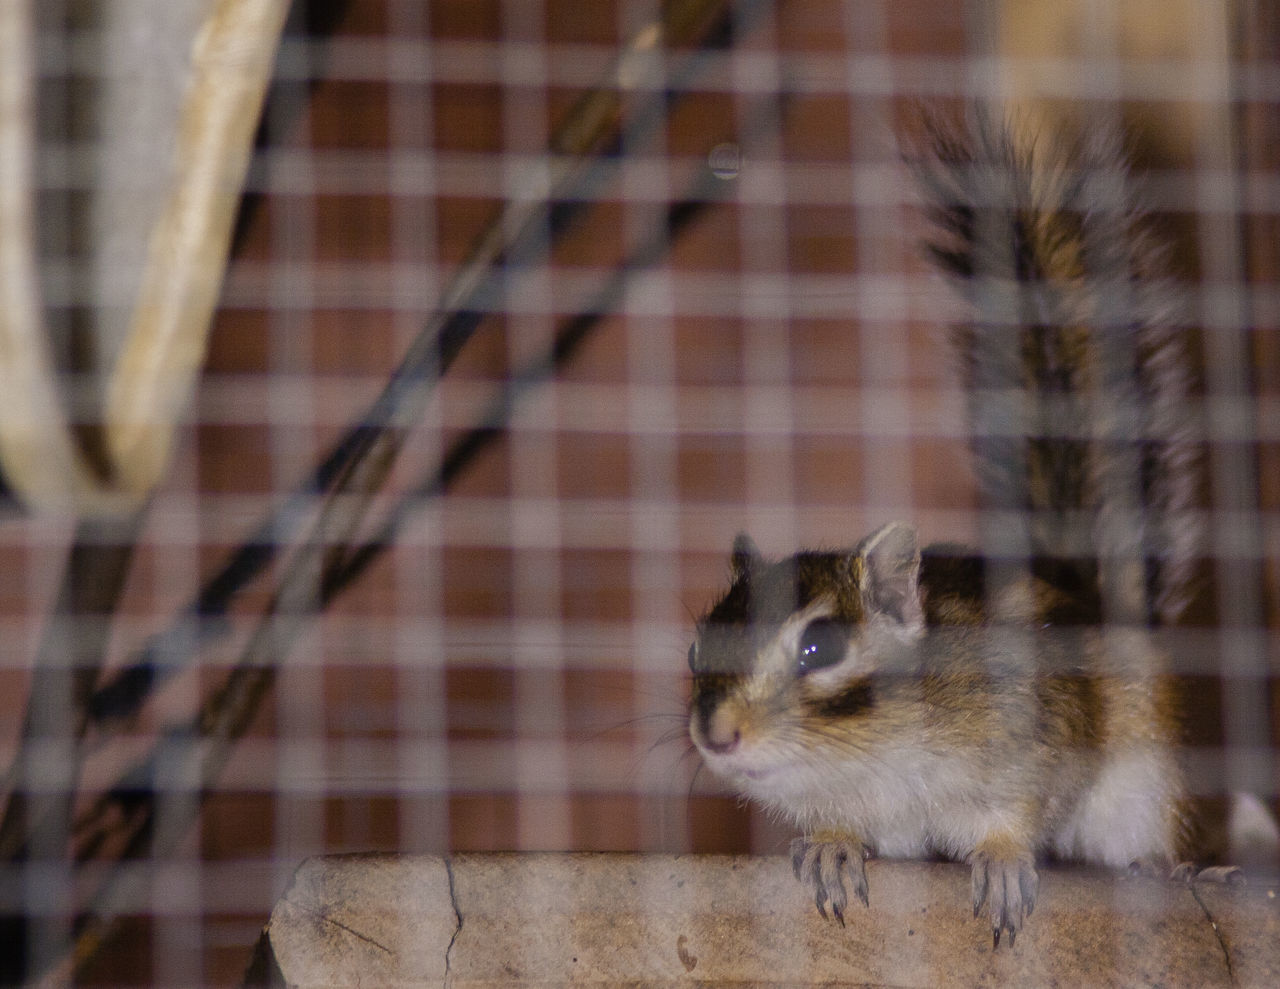 Animal Themes Cage Caged Chipmunk Chipmunk Close-up Chipmunk Eating Chipmunk Photography Chipmunkcheeks Chipmunkface Chipmunks  Close-up Day Domestic Animals Domestic Life Hamster Mammal No People One Animal Pets Rodent Wildlife